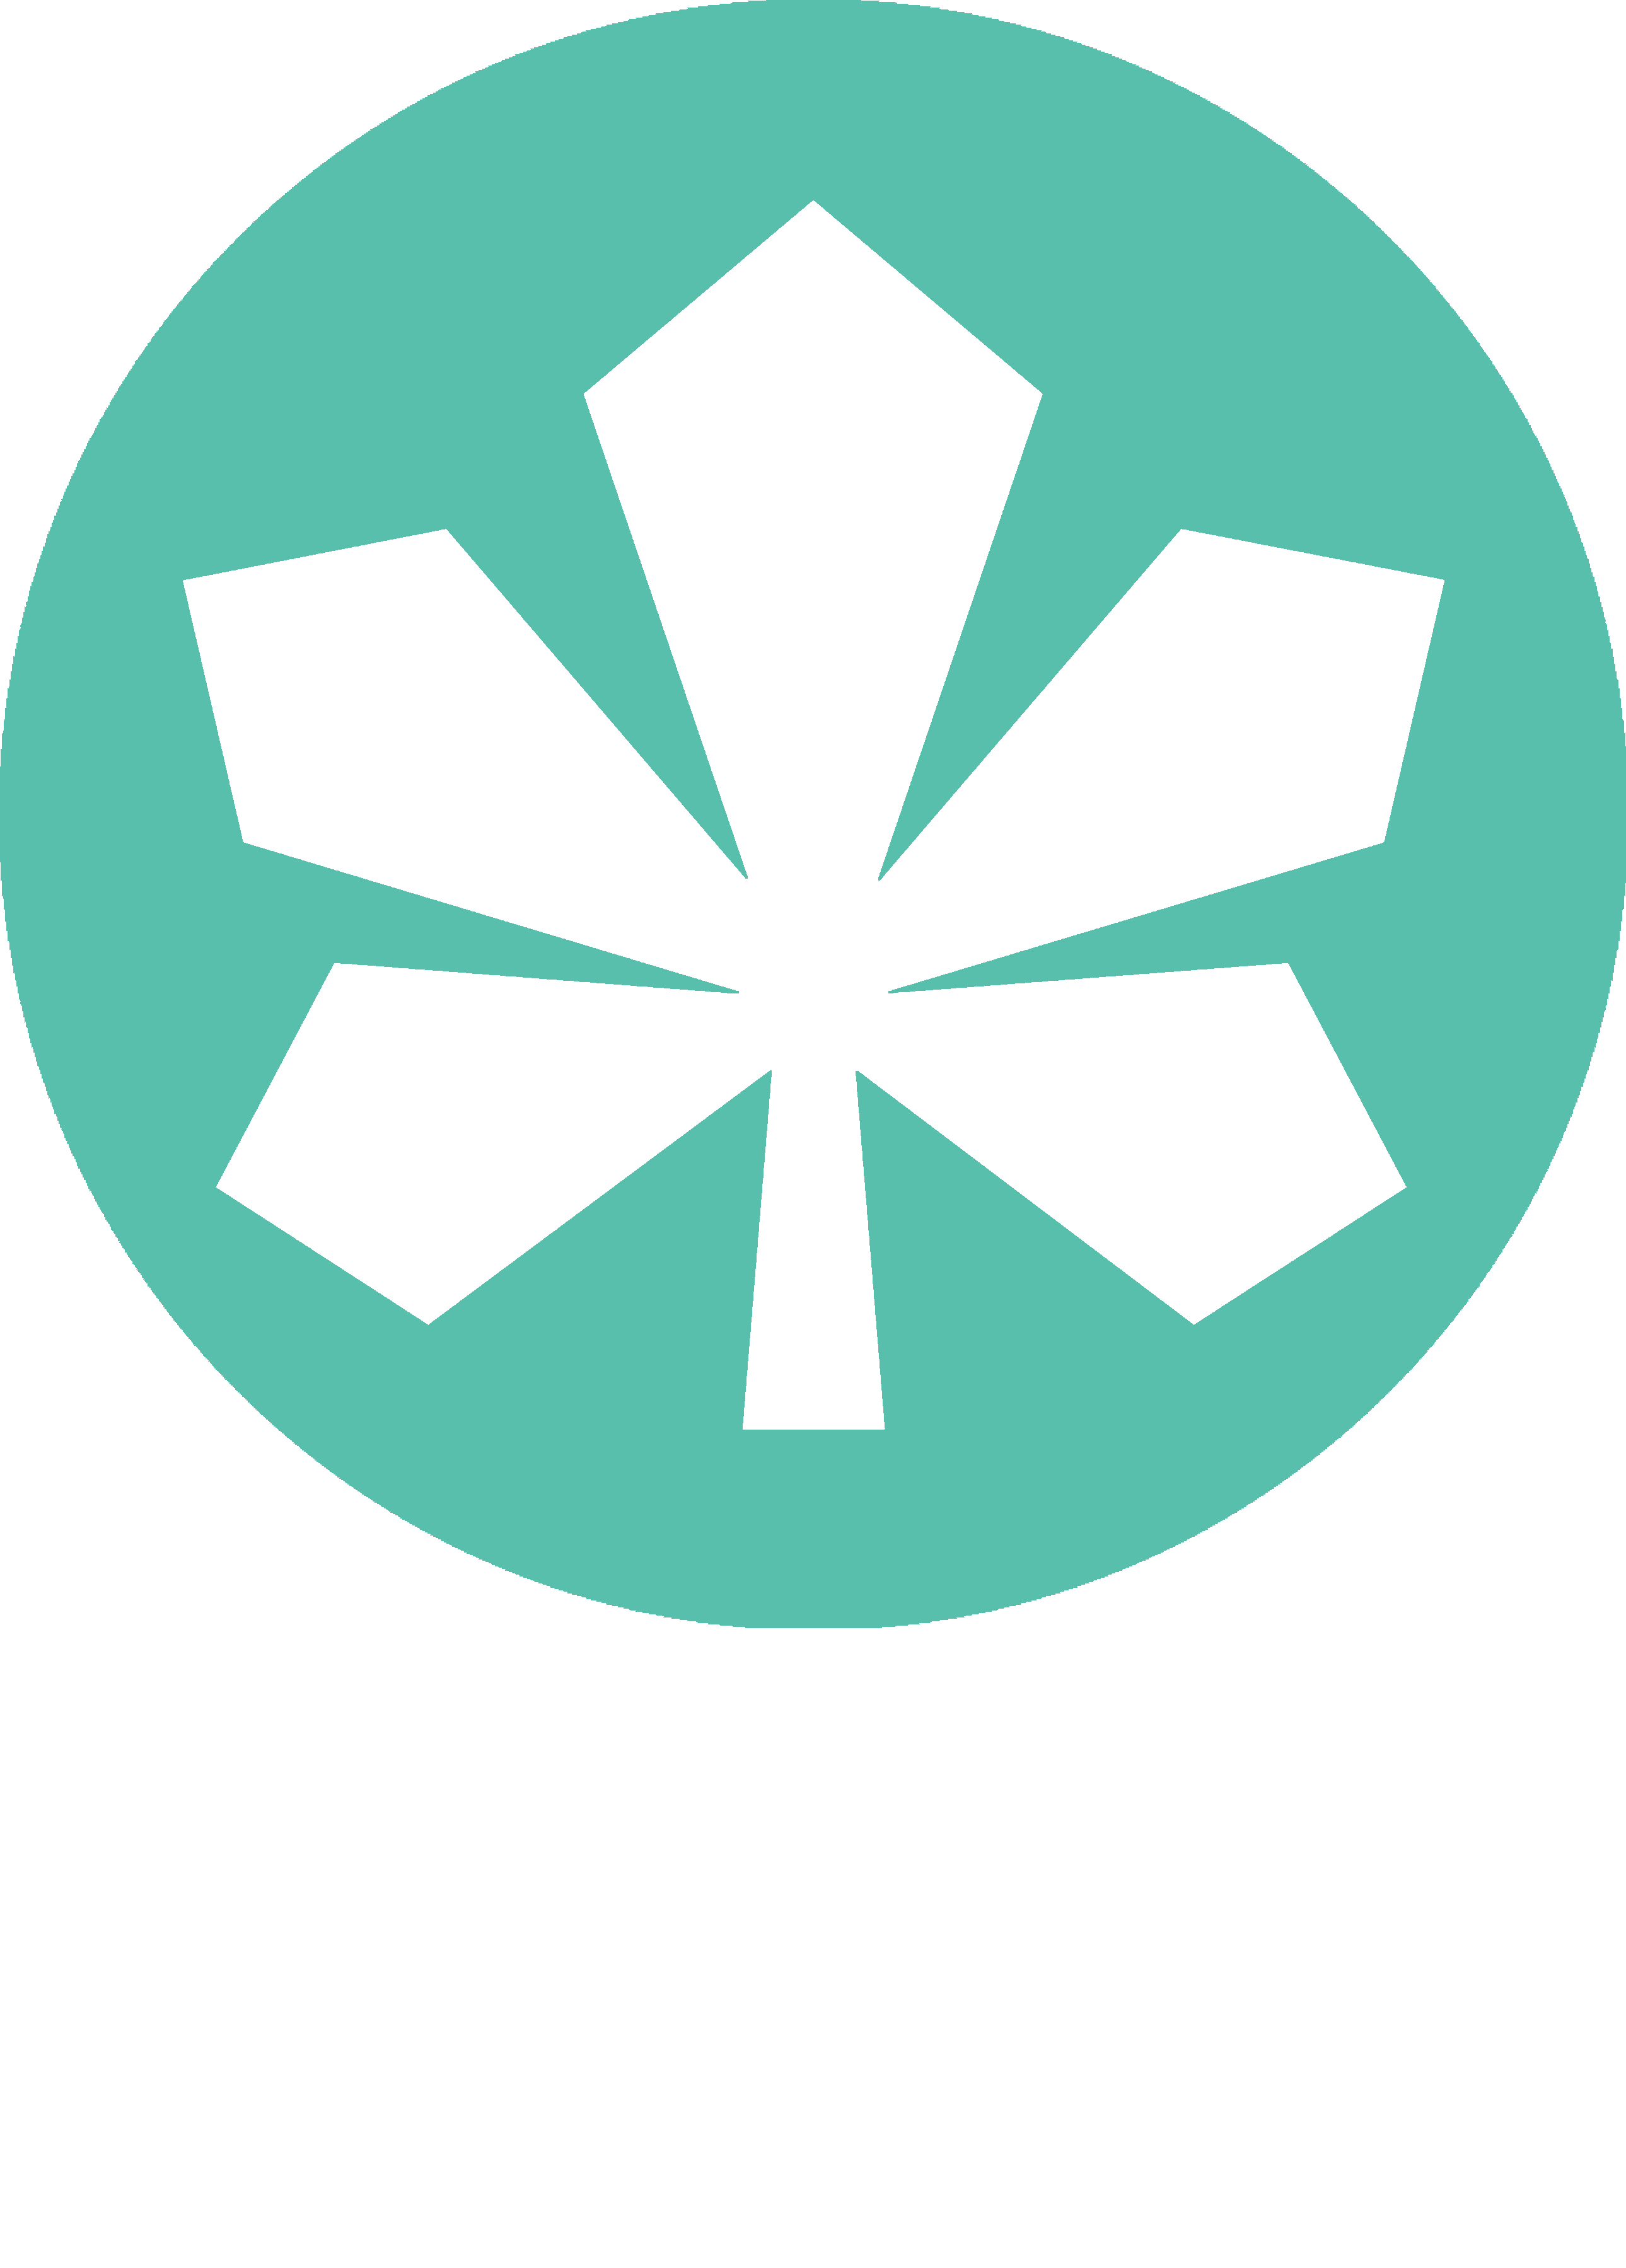 Kyiv TV (2019, green)